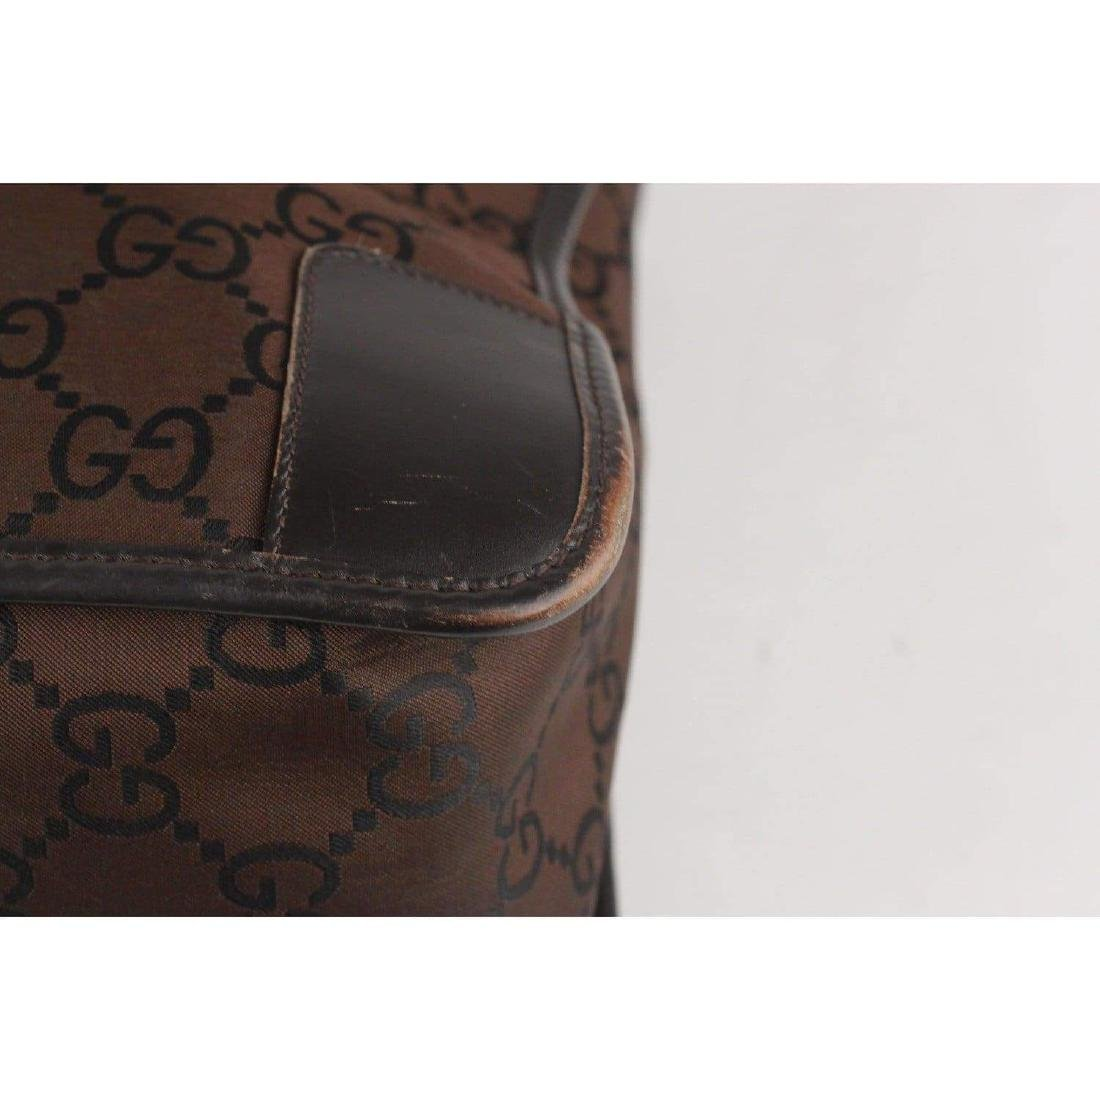 Gucci Monogram Canvas Satchel Bag - 5